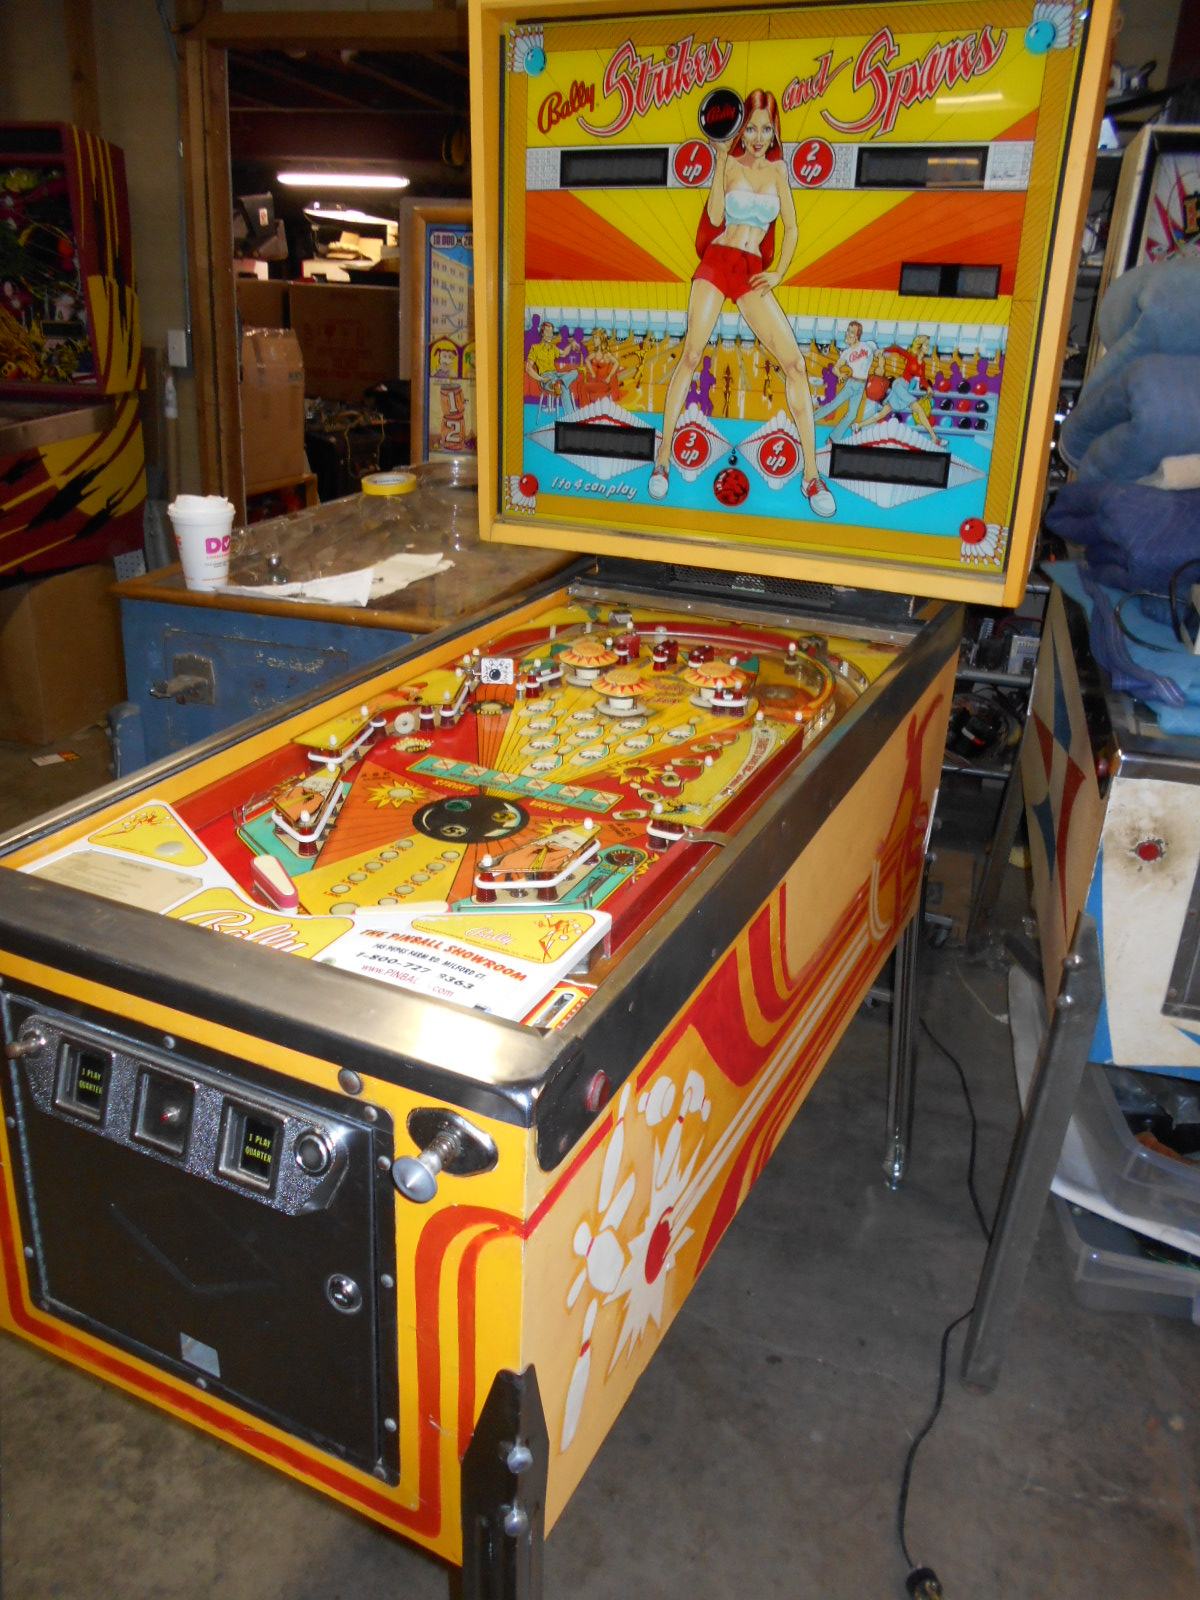 STRIKES AND SPARES Pinball Machine Game for sale by BALLY SCORE